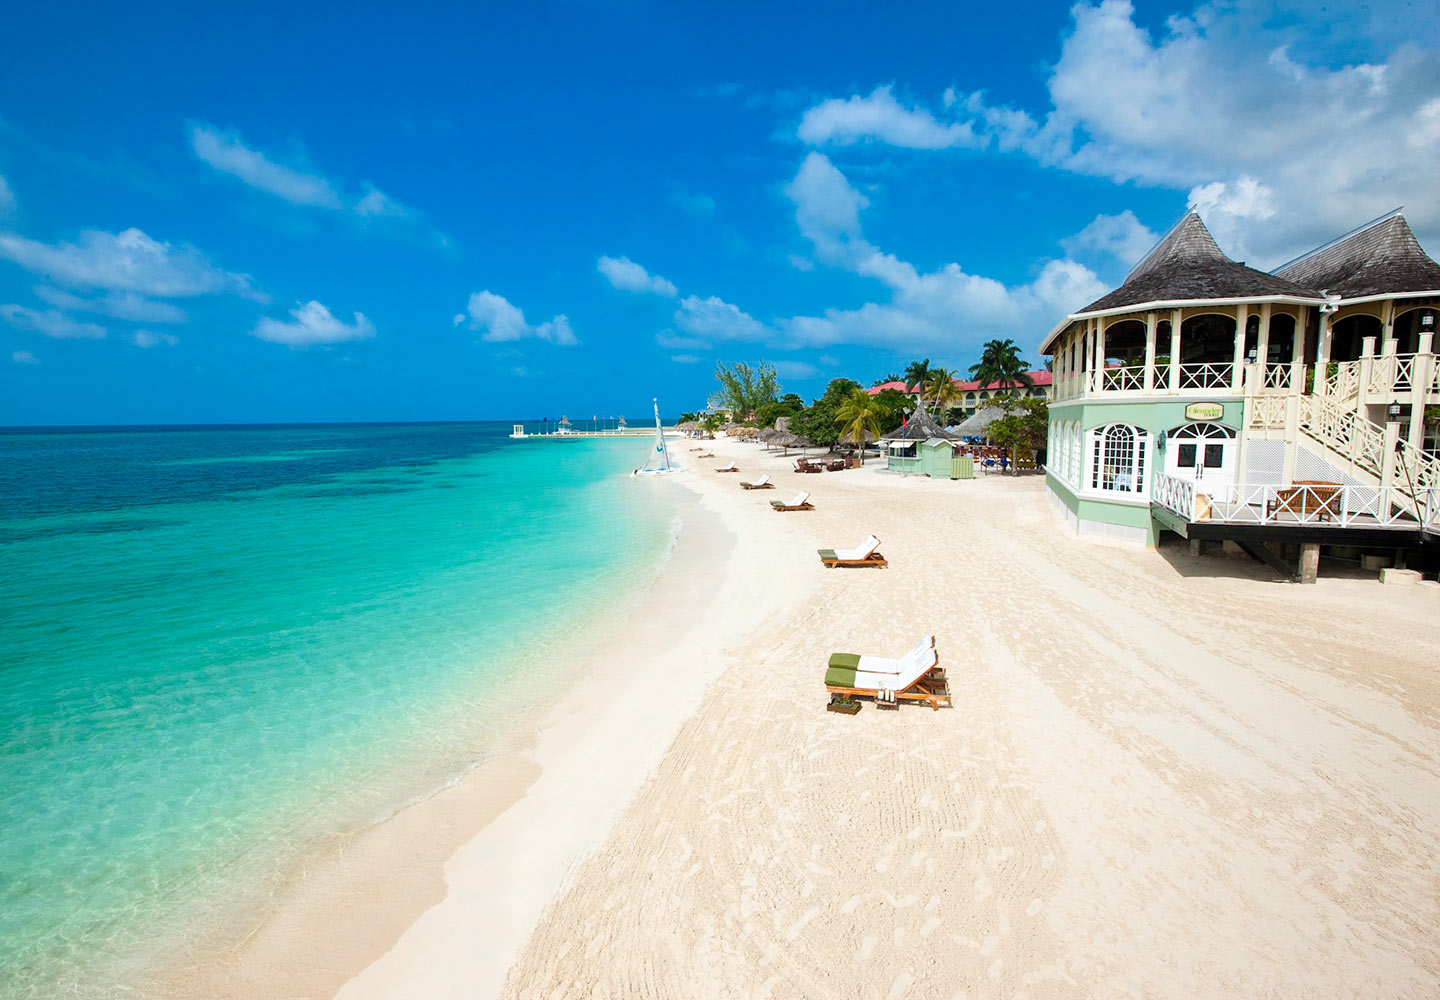 Travel Agency All-Inclusive Resort Sandals Montego Bay 019